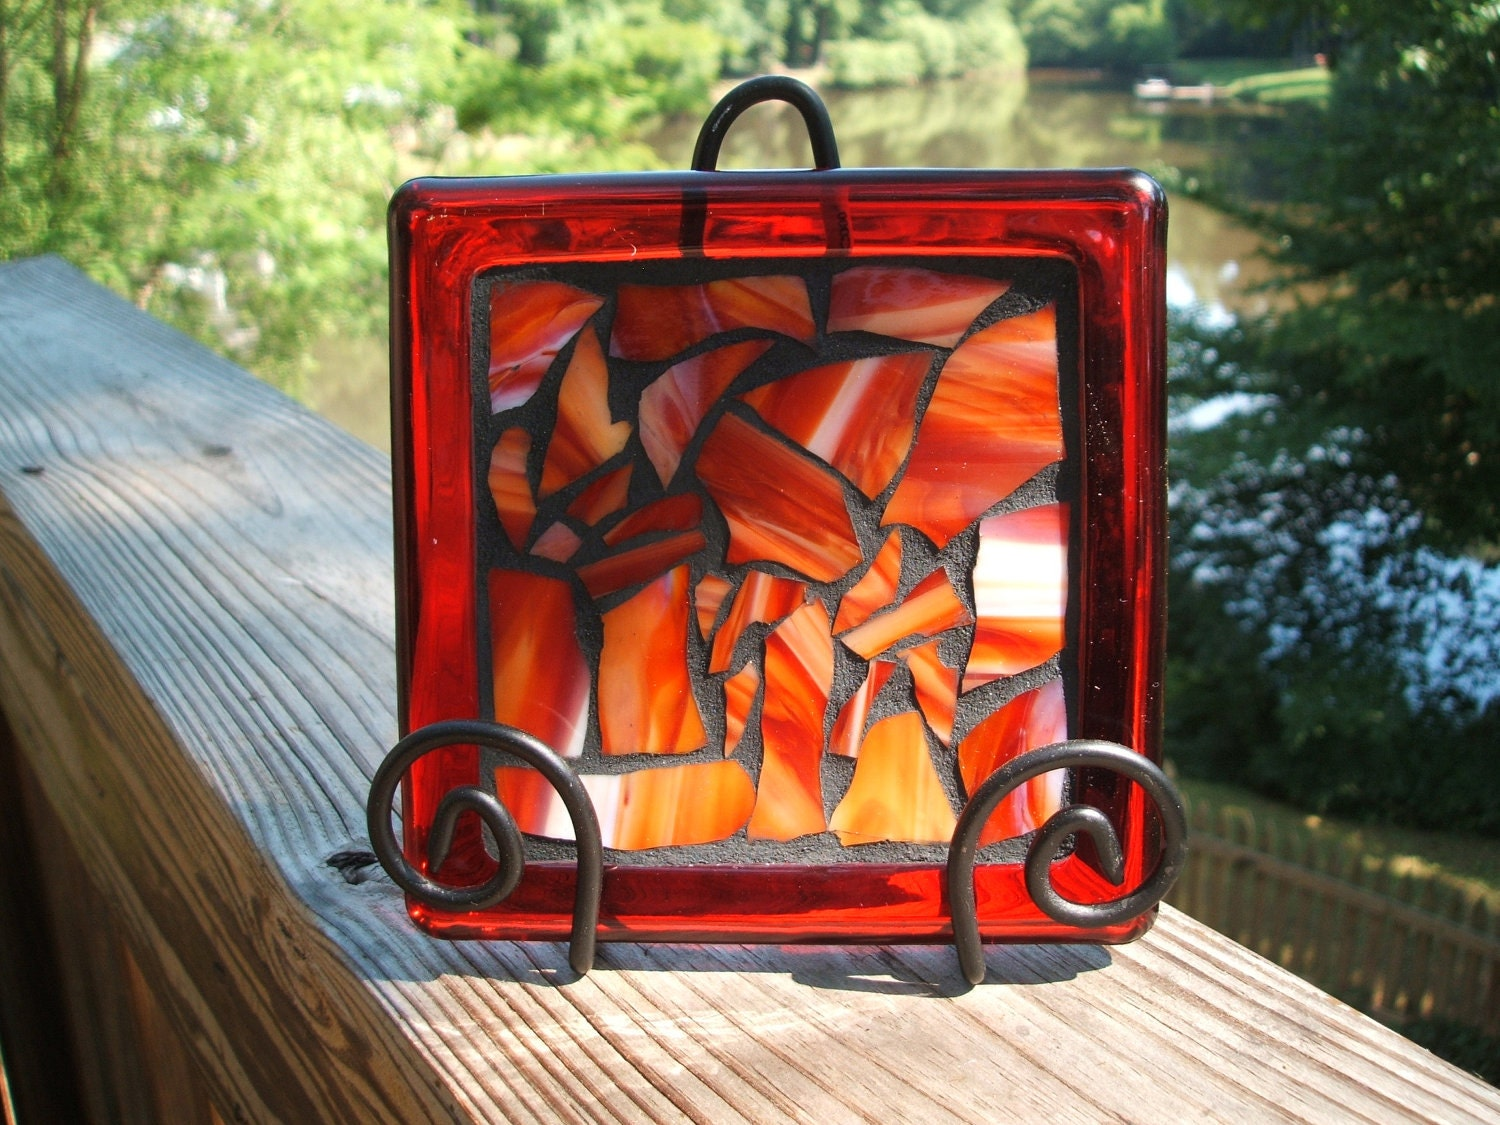 Mosaic Trivet/Candleholder/Decorative Accessory w Red, Orange & White Stained Glass (black stand incl)...SALE...was 18.00, now 15.00 - WiseCrackinMosaics